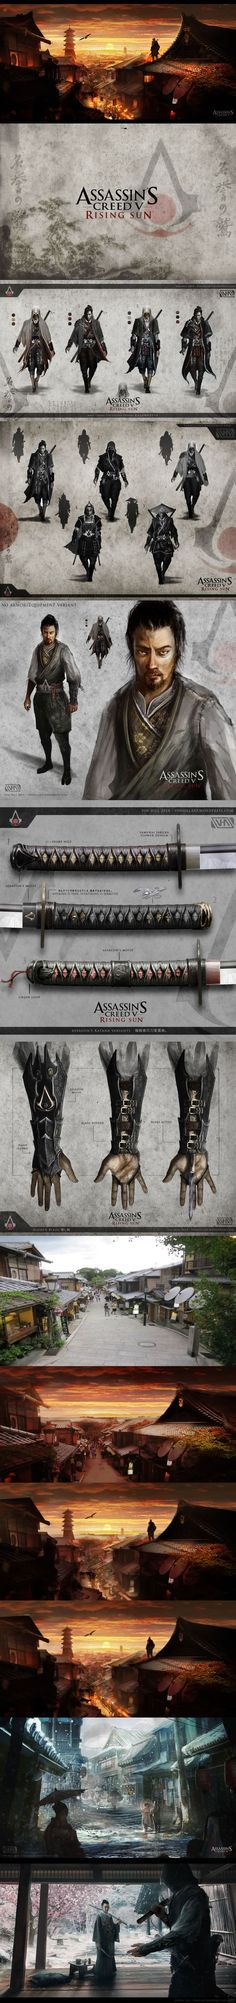 If Assassin's Creed was set in Japan.